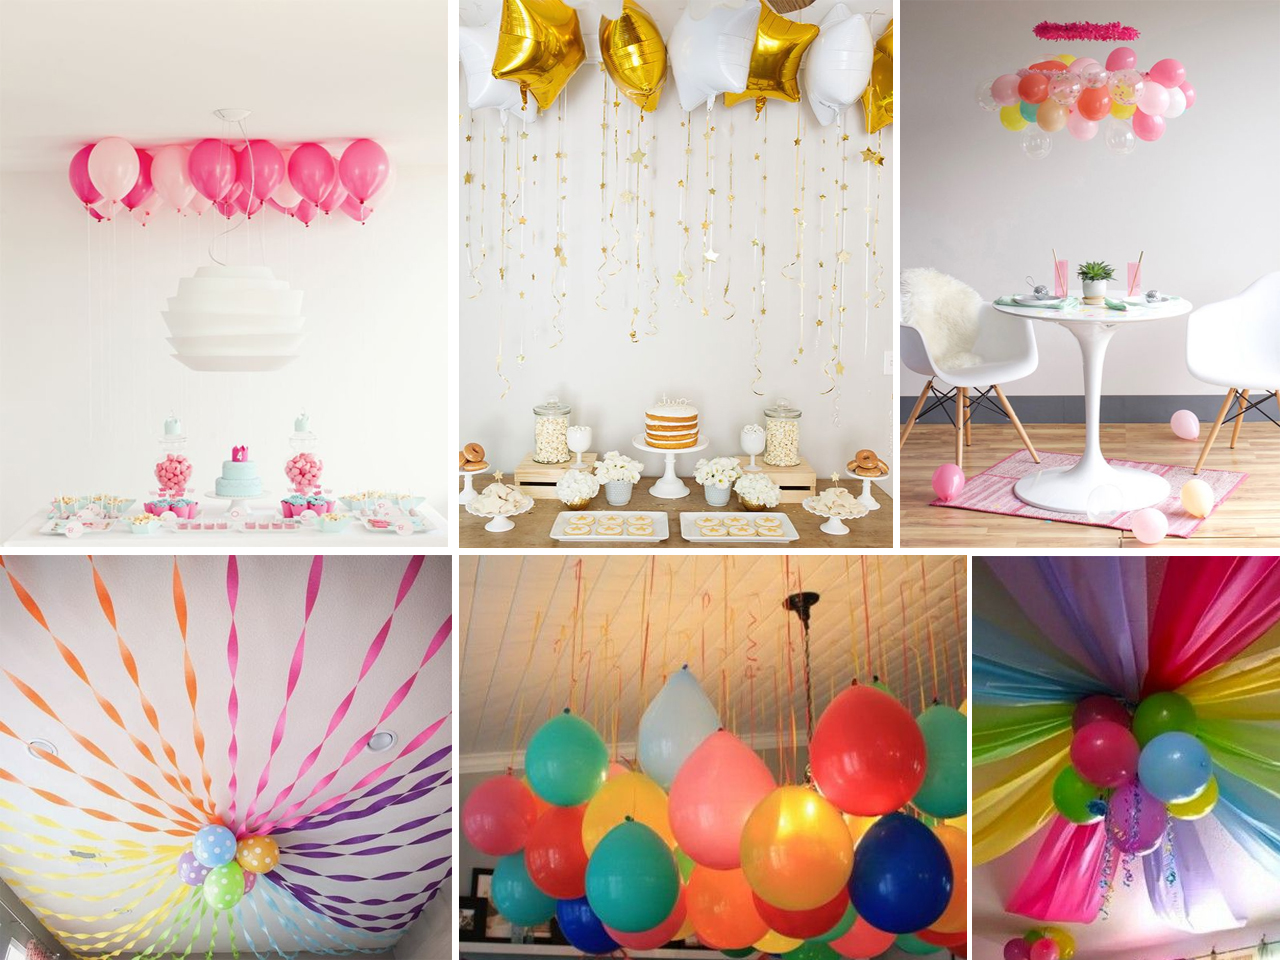 Descubre c mo decorar con globos con estas fant sticas ideas for Todo ideas originales para decorar